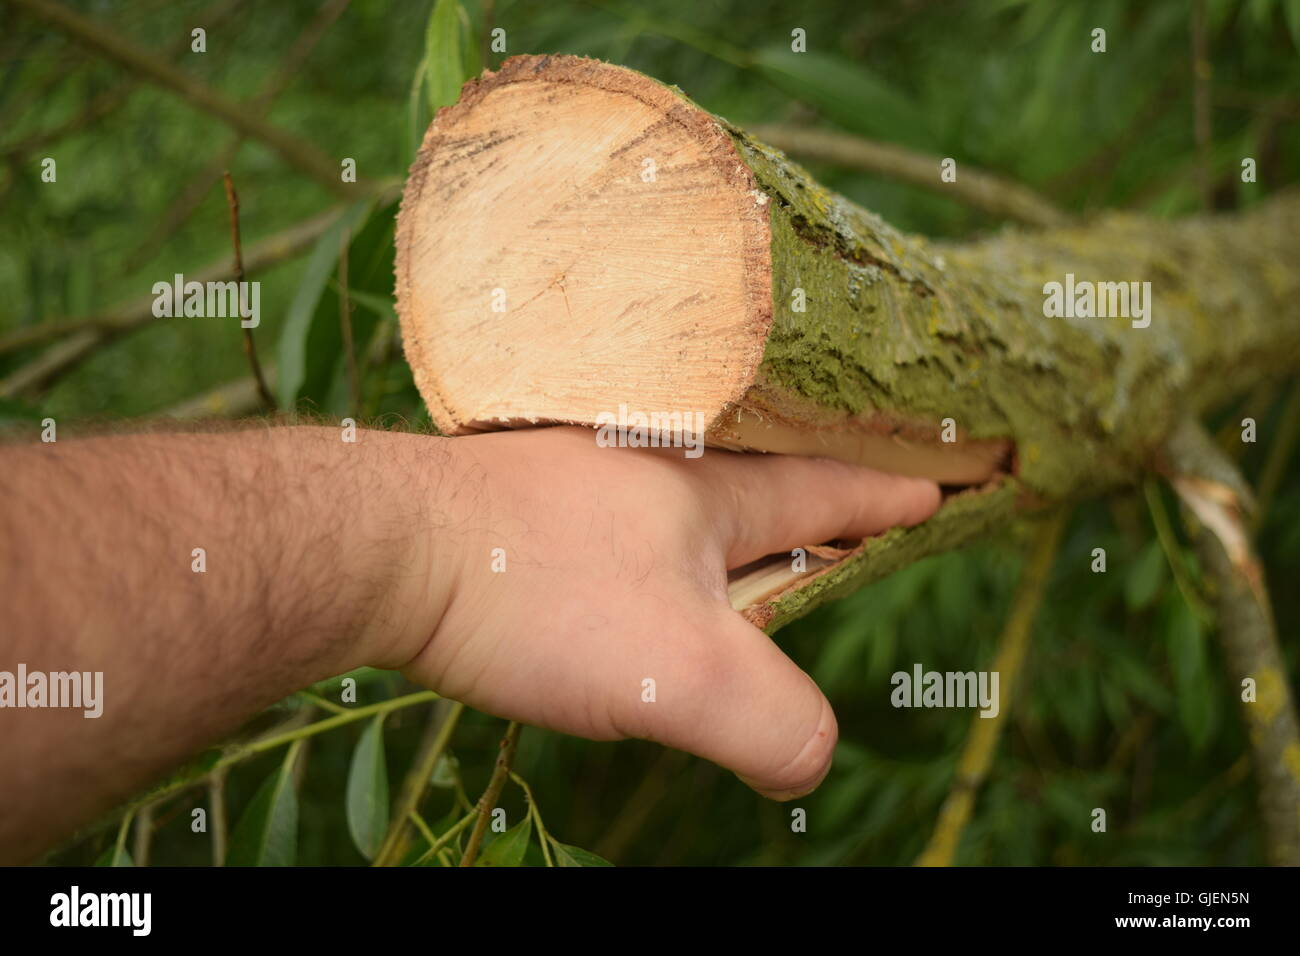 Man Hand Trapped in Wood - Stock Image